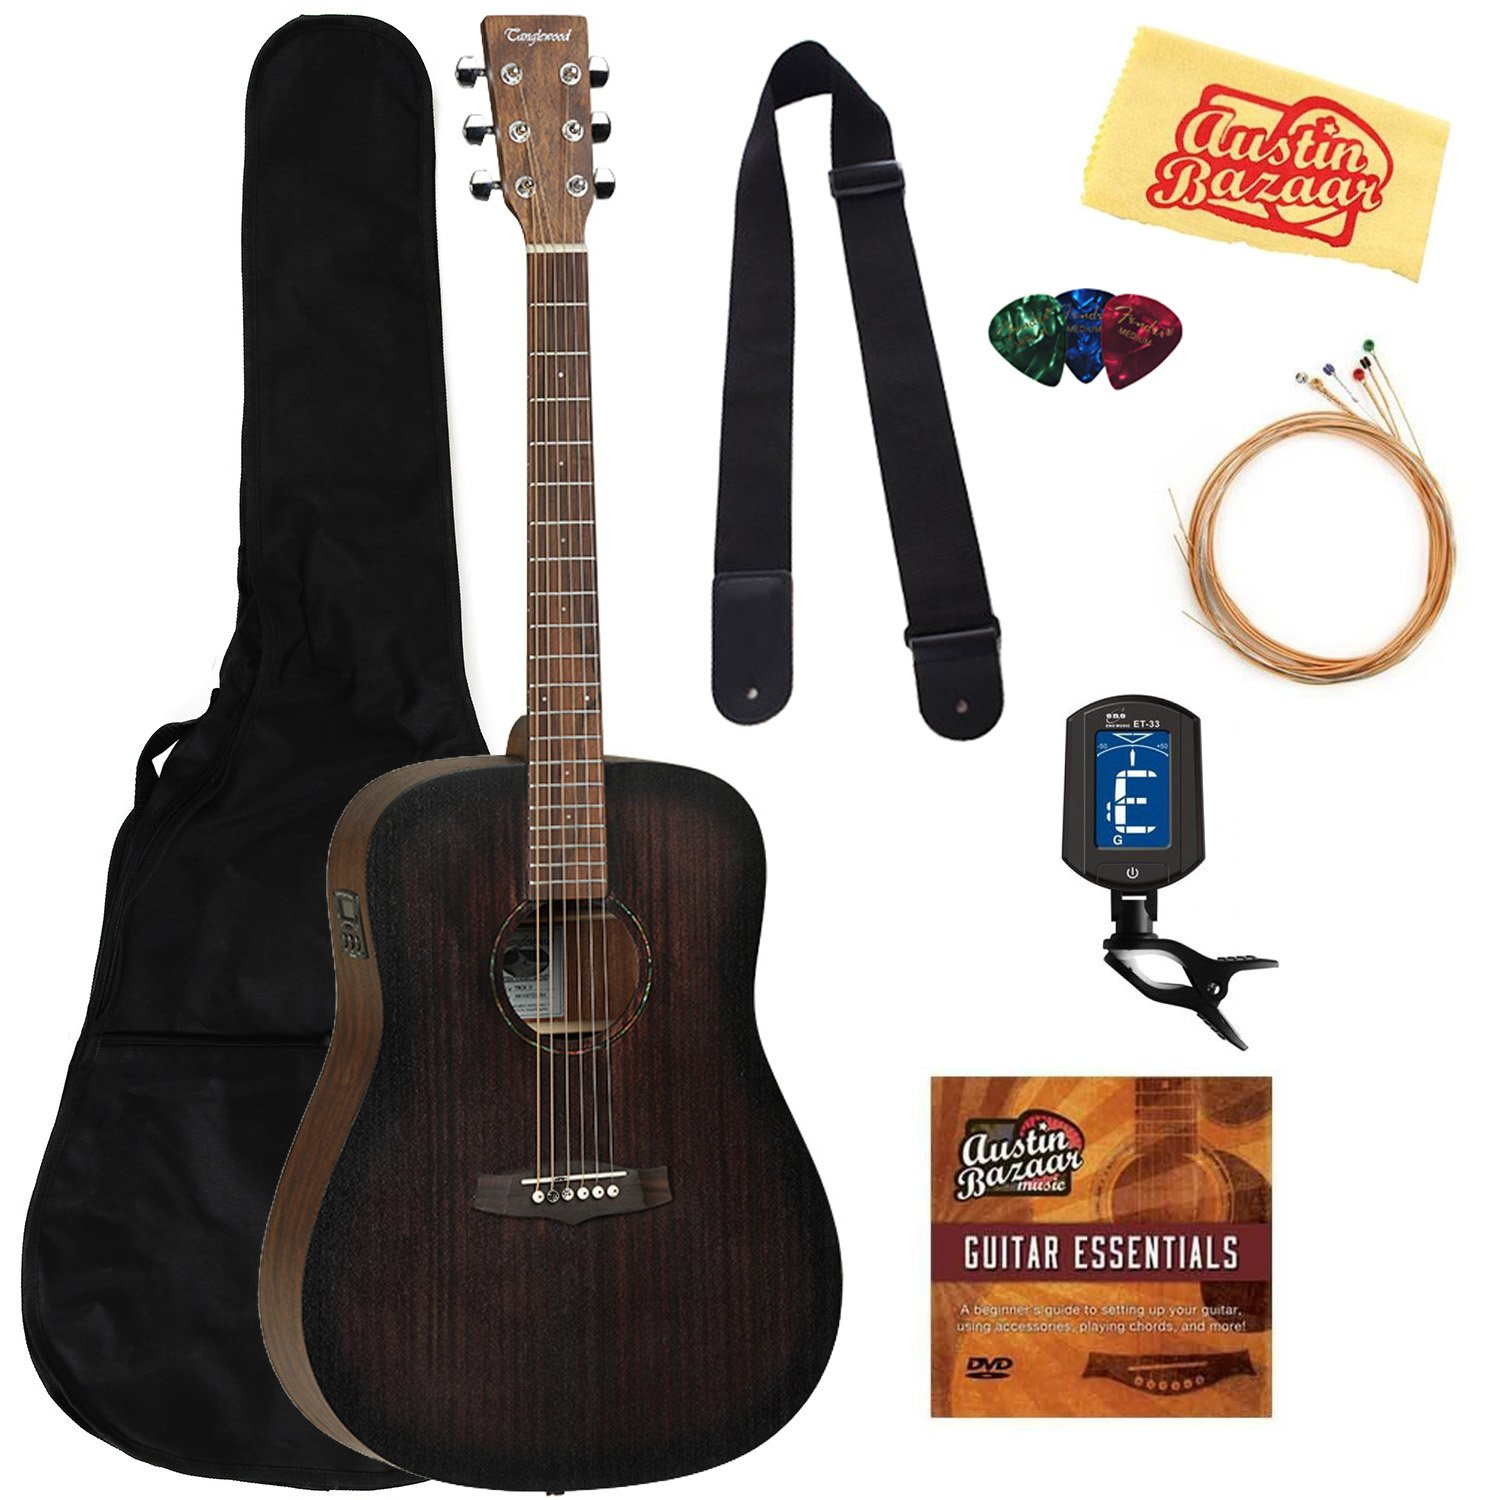 Showing package contents for the Tanglewood Crossroads Dreadnought EAG